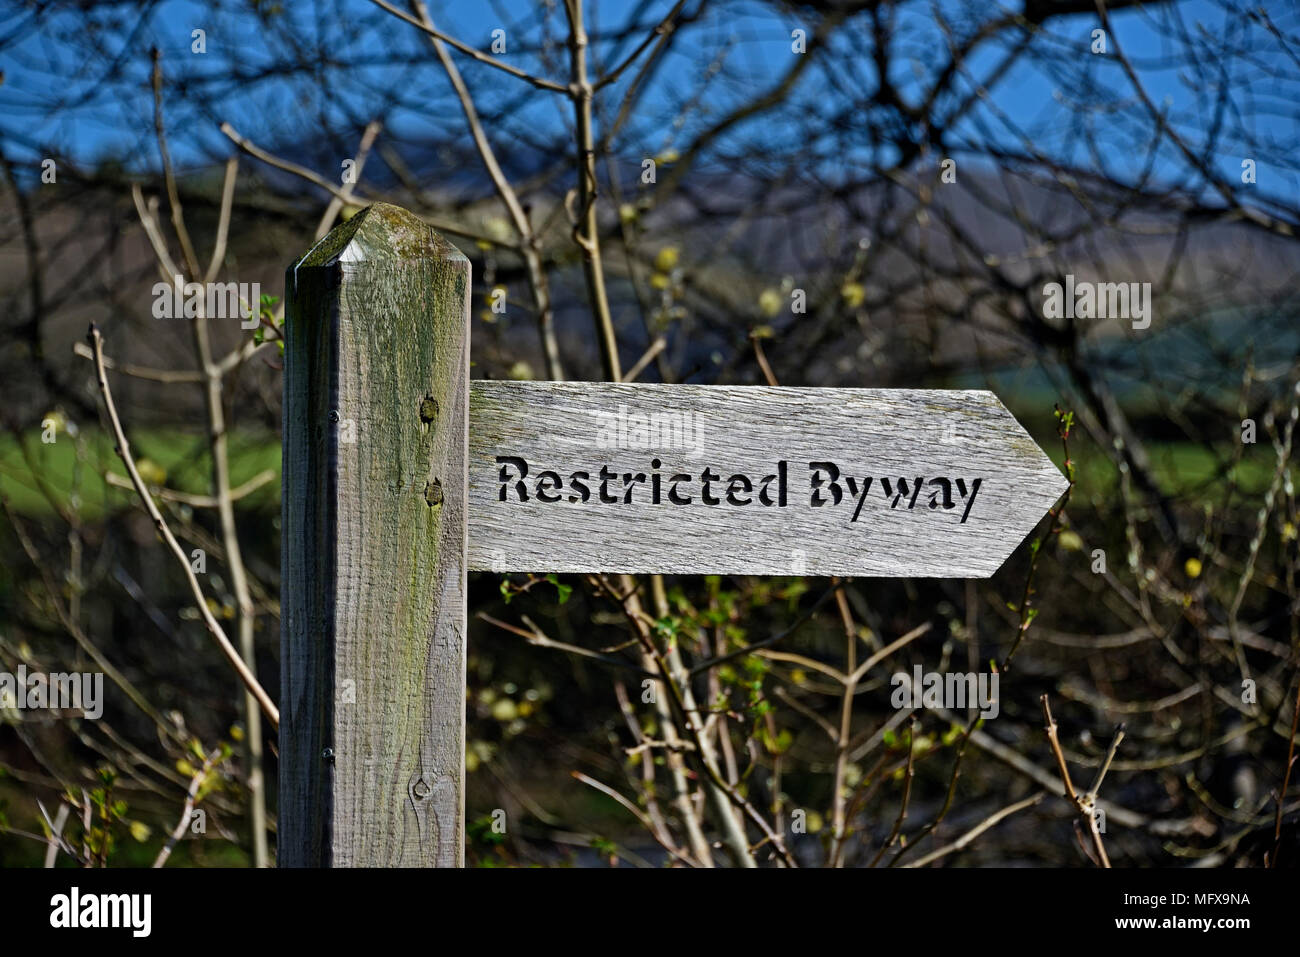 Restricted Byway Fingerpost. Loweswater, Lake District National Park, Cumbria, England, United Kingdom, Europe. - Stock Image